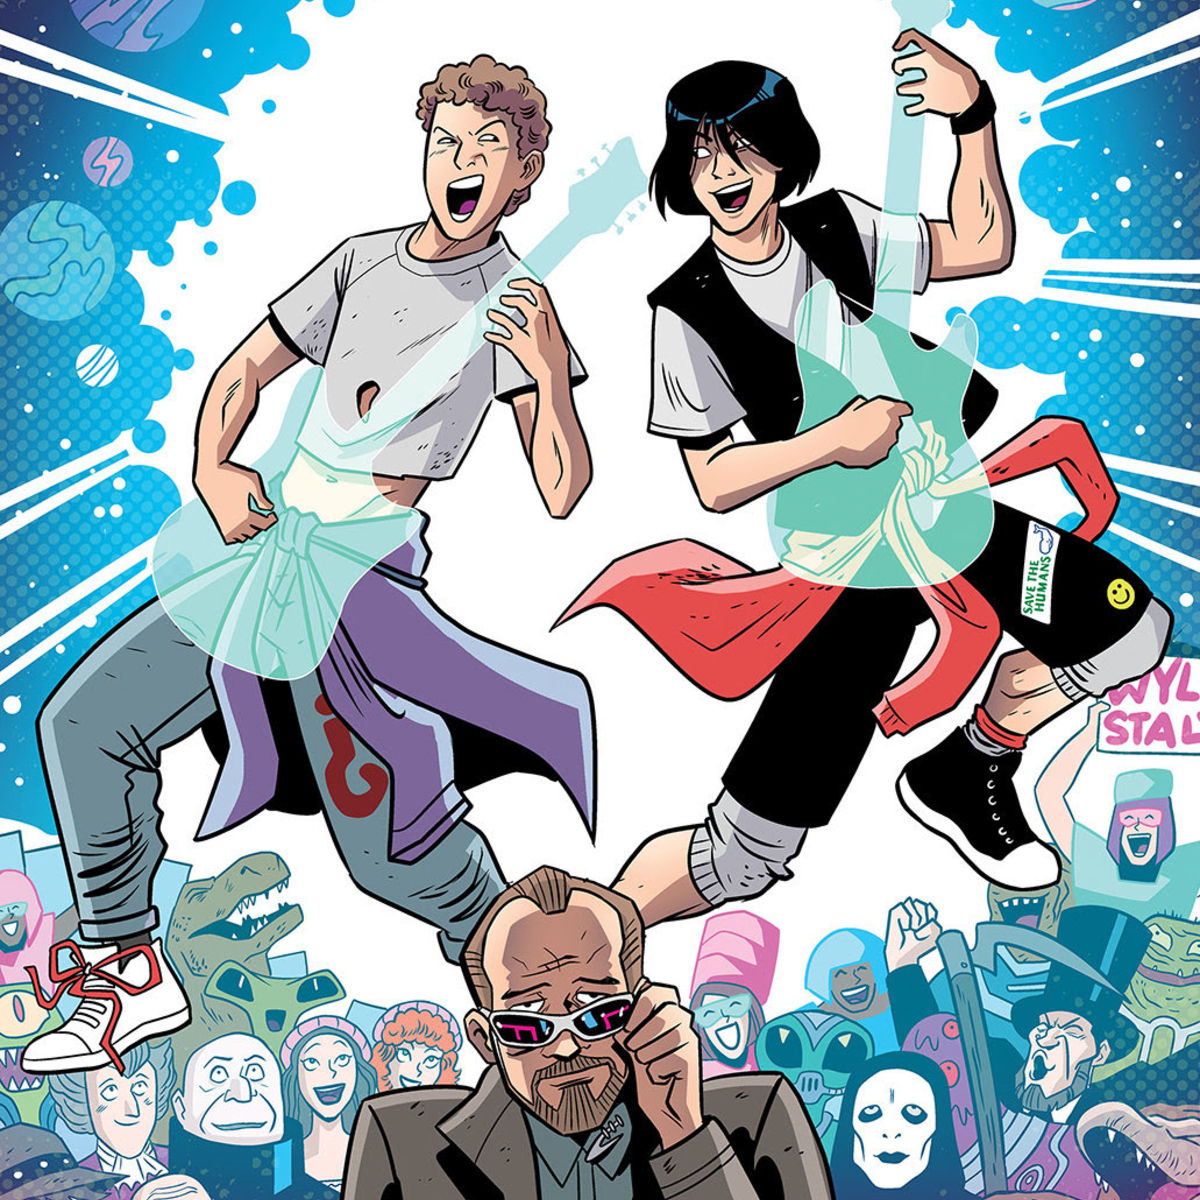 bill-and-ted-save-the-universe-1-cover-derek-charm_0.jpg